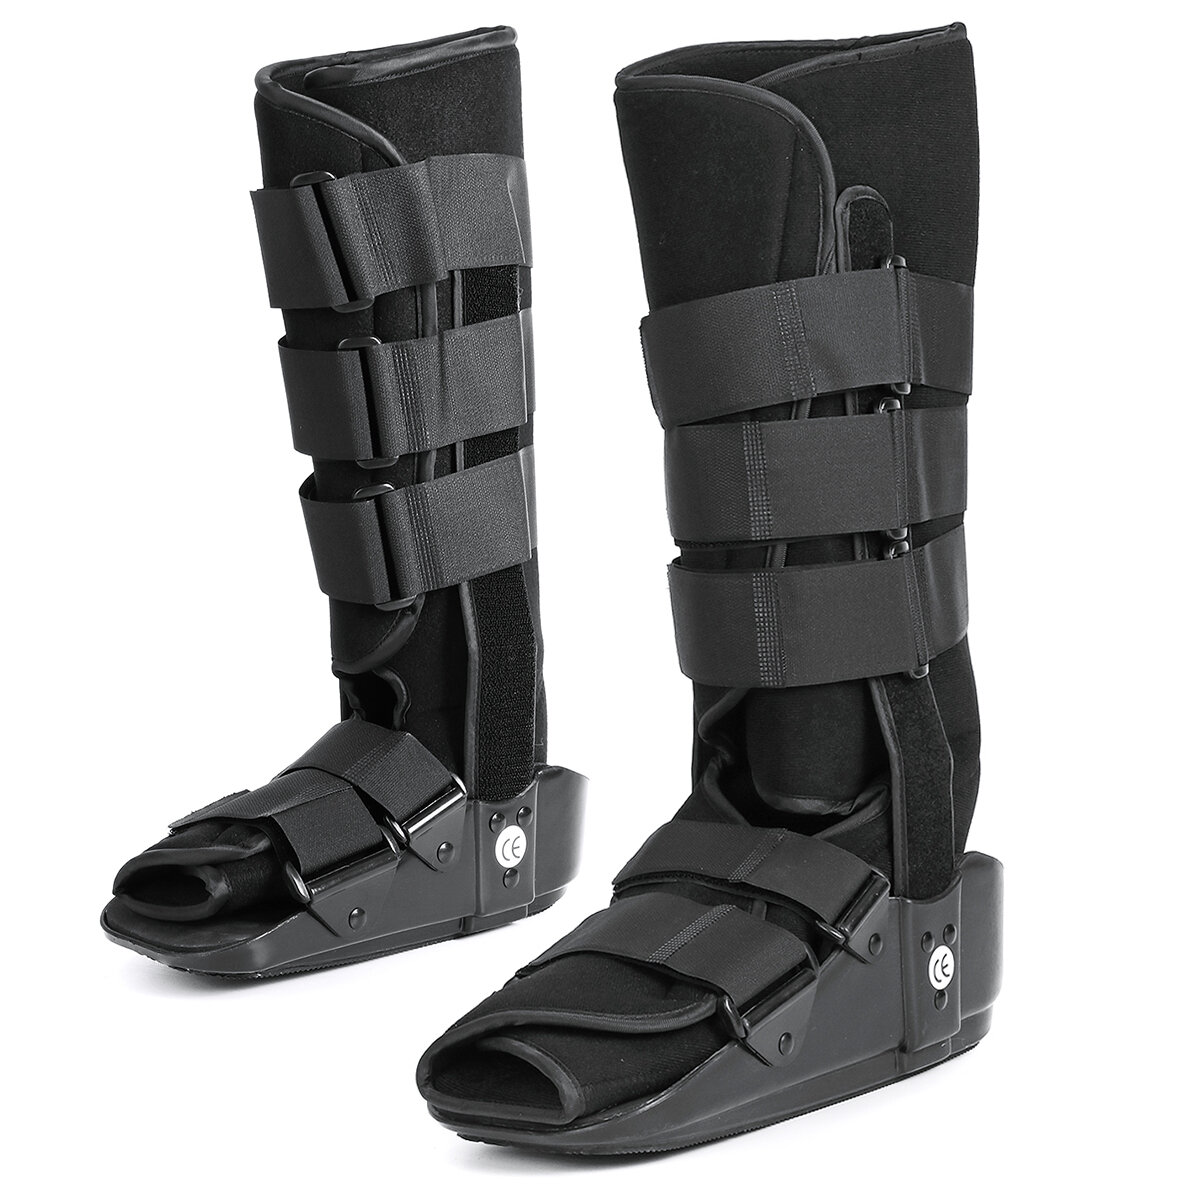 Ankle Brace Support Orthosis Shoe Adjustable Ankle Straps Foot Stabilizer Ankle Protector